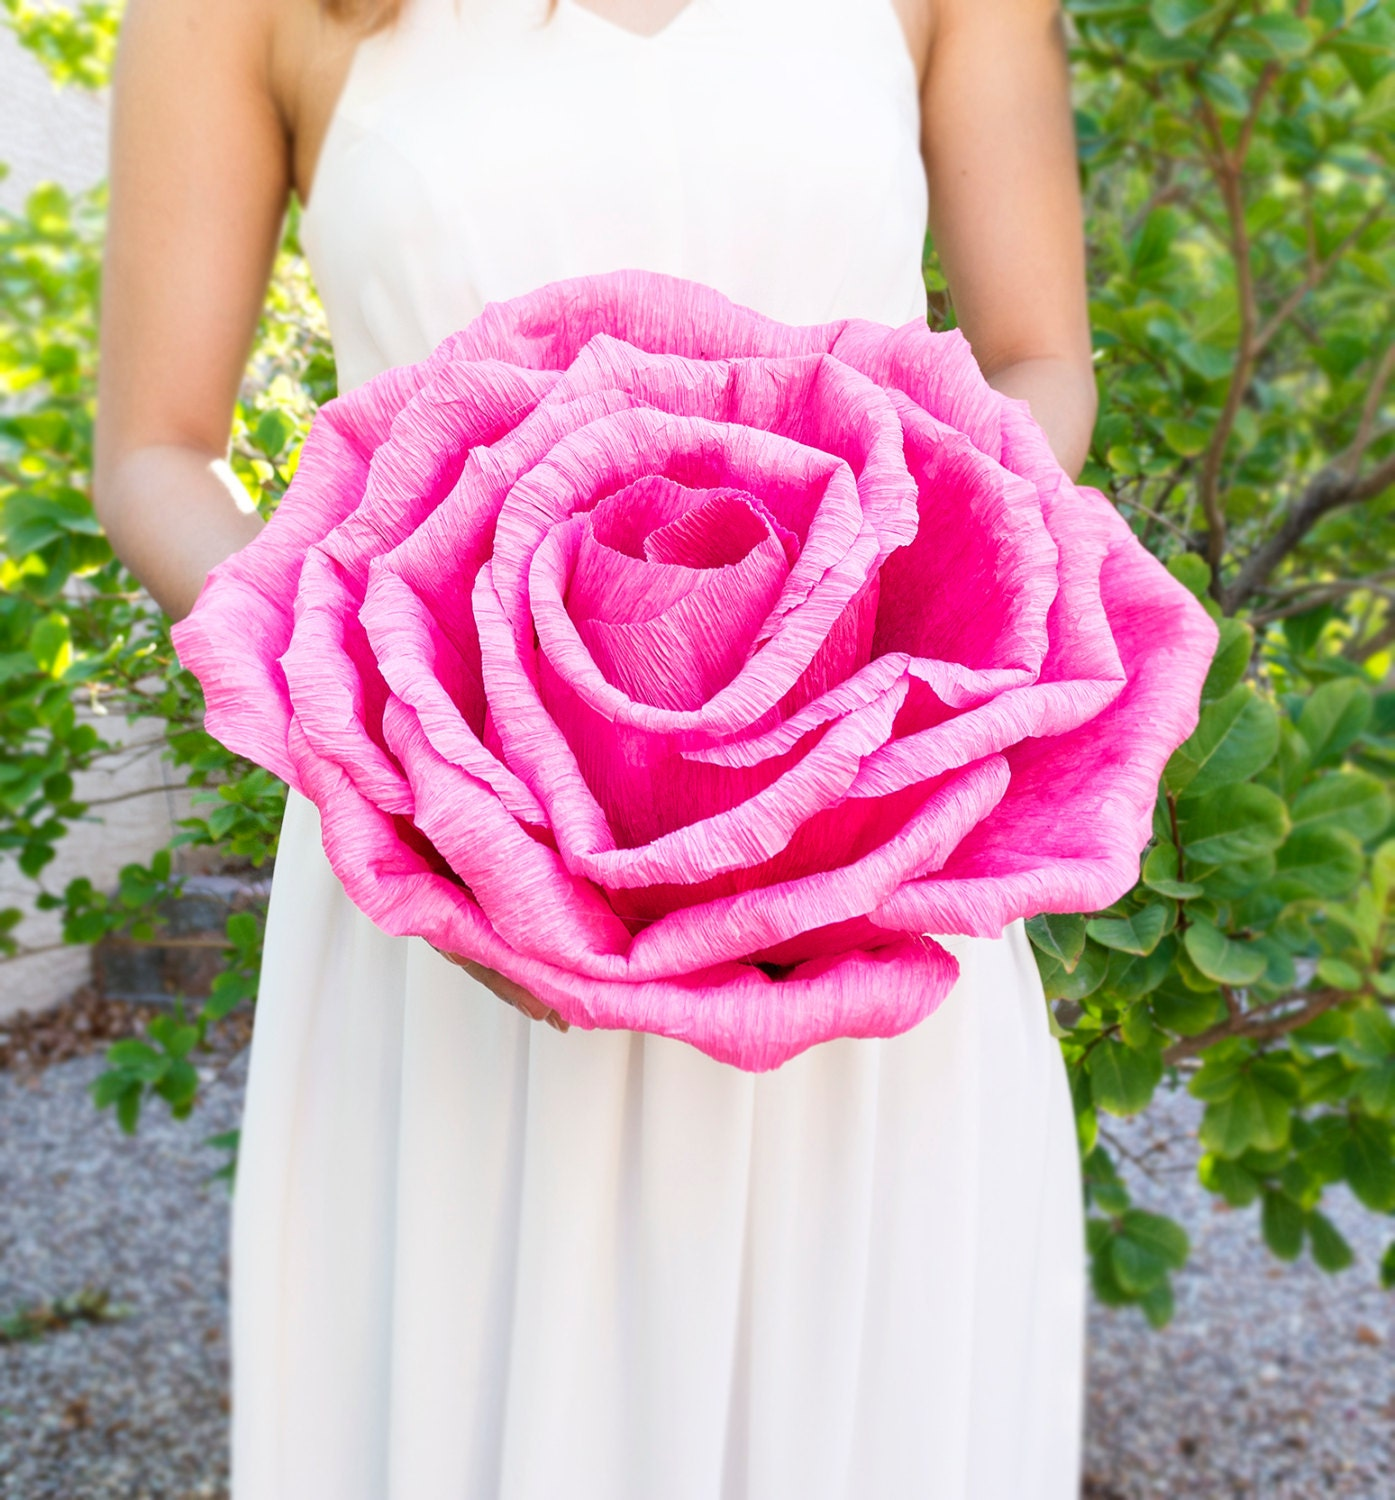 Handmade giant crepe paper flower without stem wedding